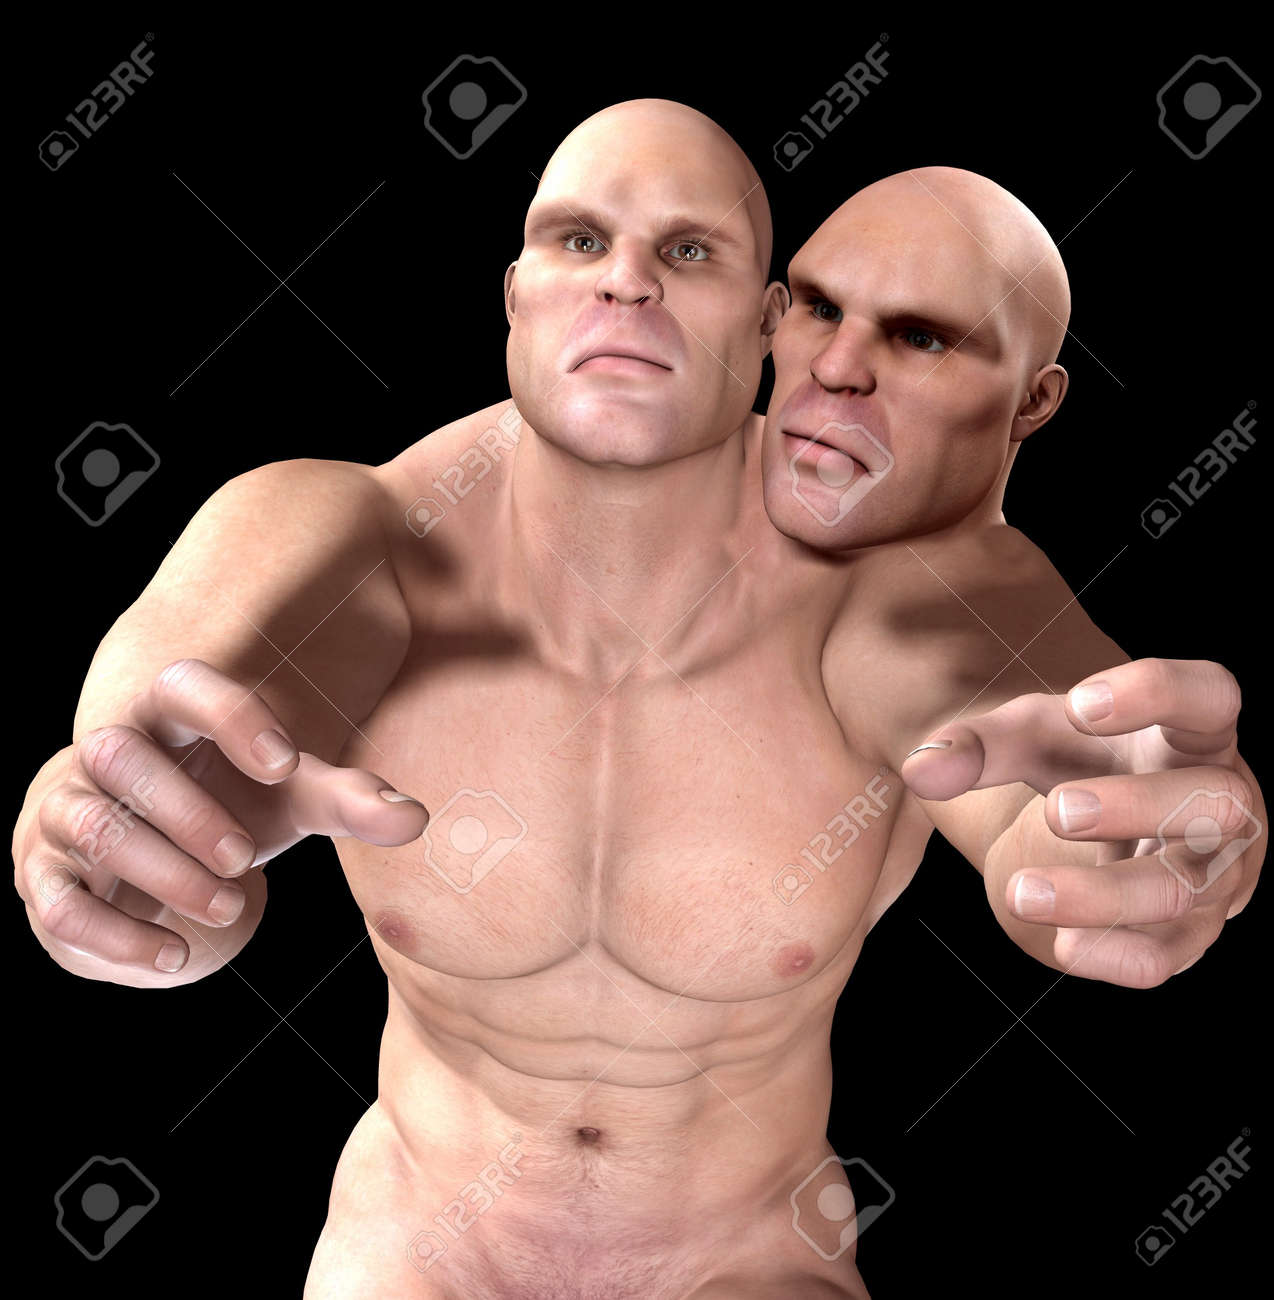 Strange image showing a two headed mutant. Stock Photo - 7455282